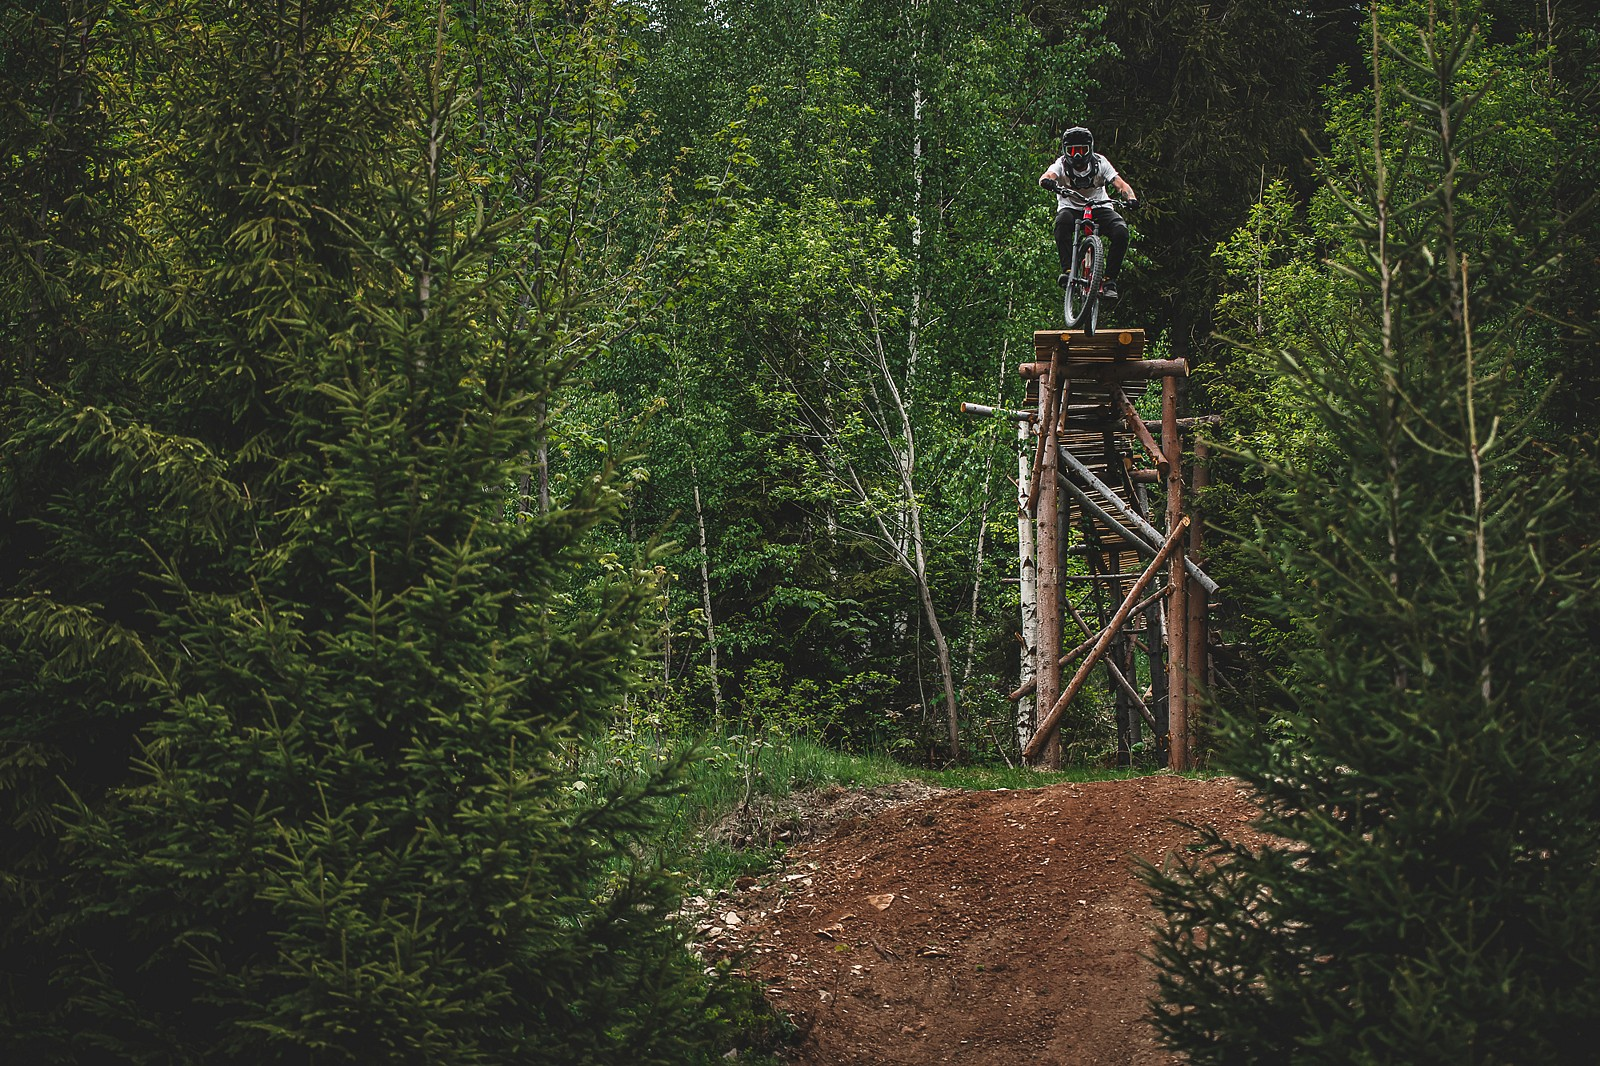 droppin' - Banan - Mountain Biking Pictures - Vital MTB